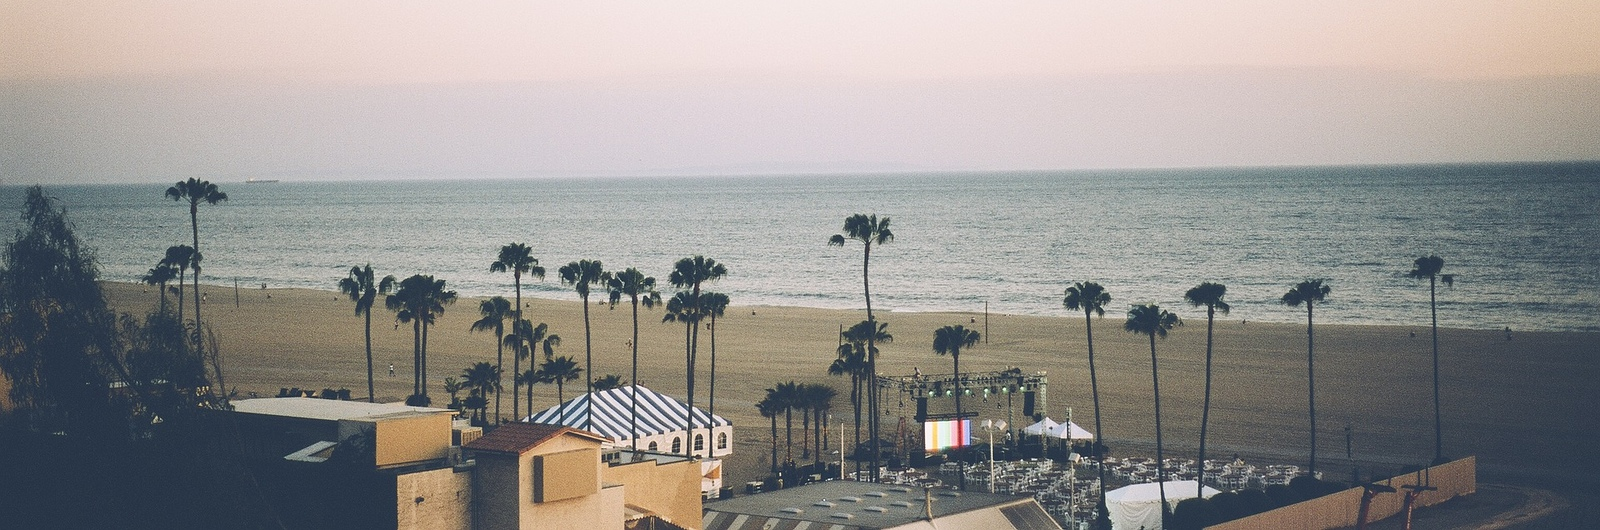 santa monica city header